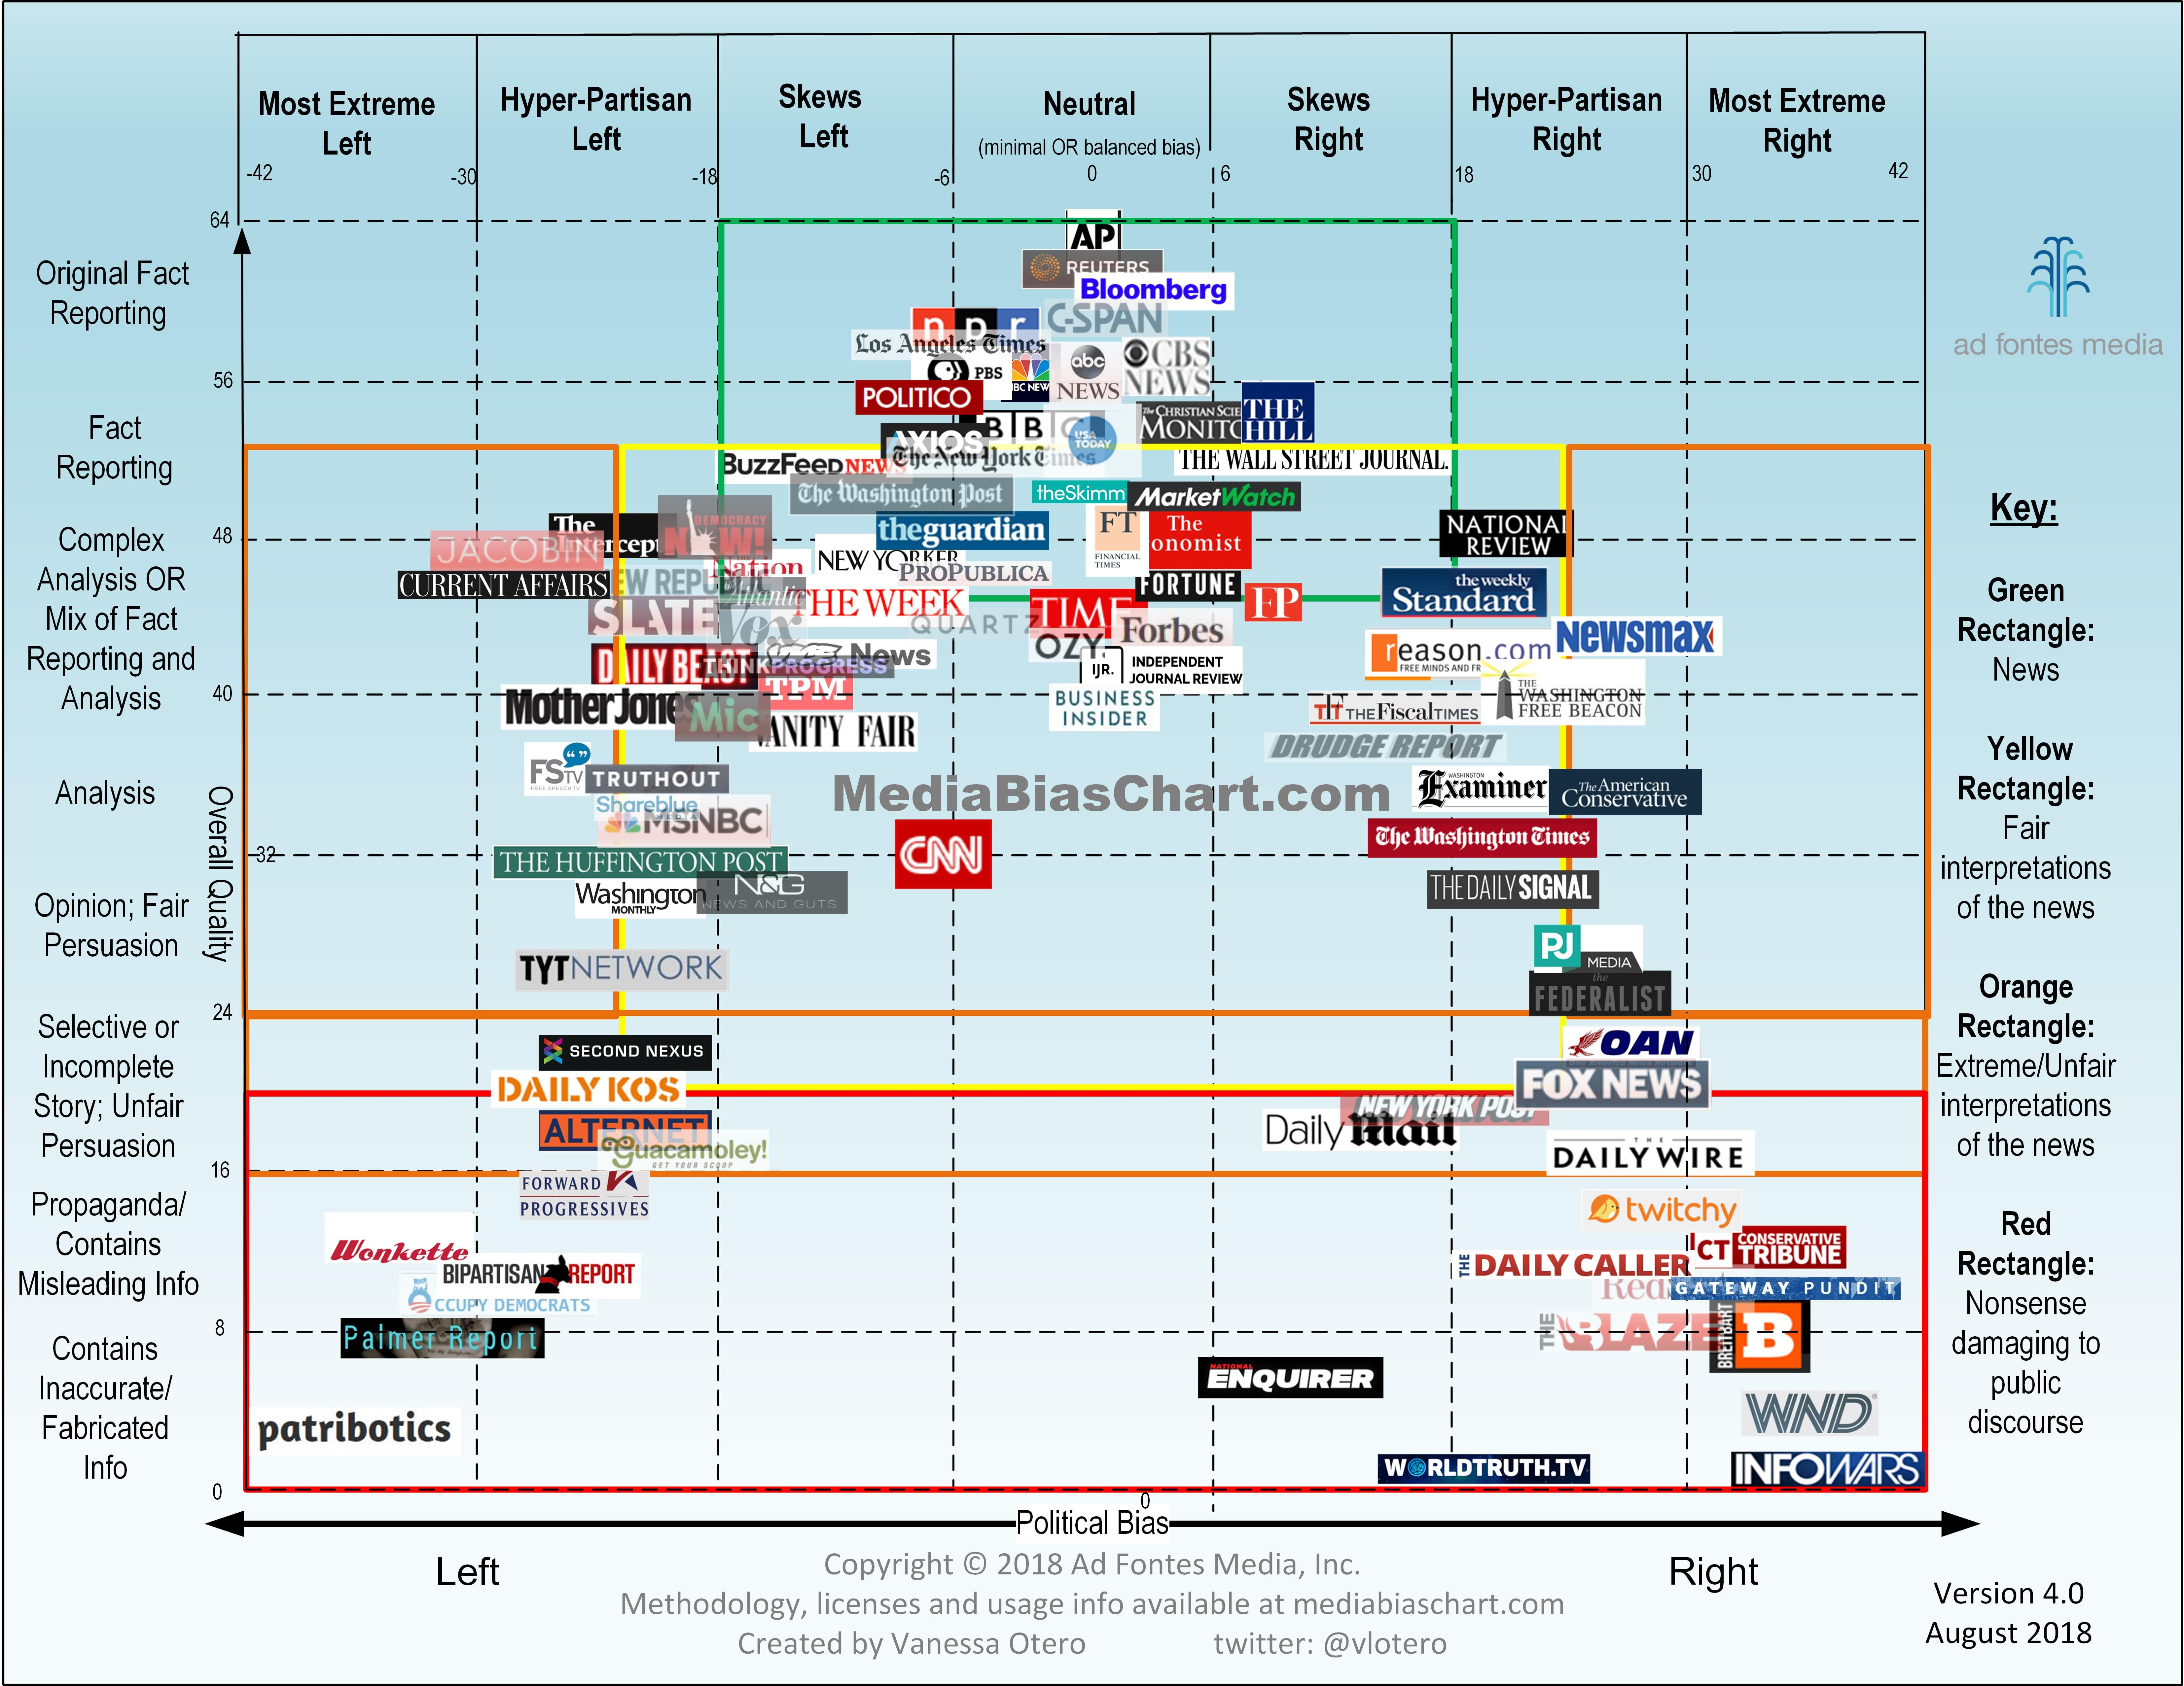 a chart showing political leanings and overall quality of various media sources